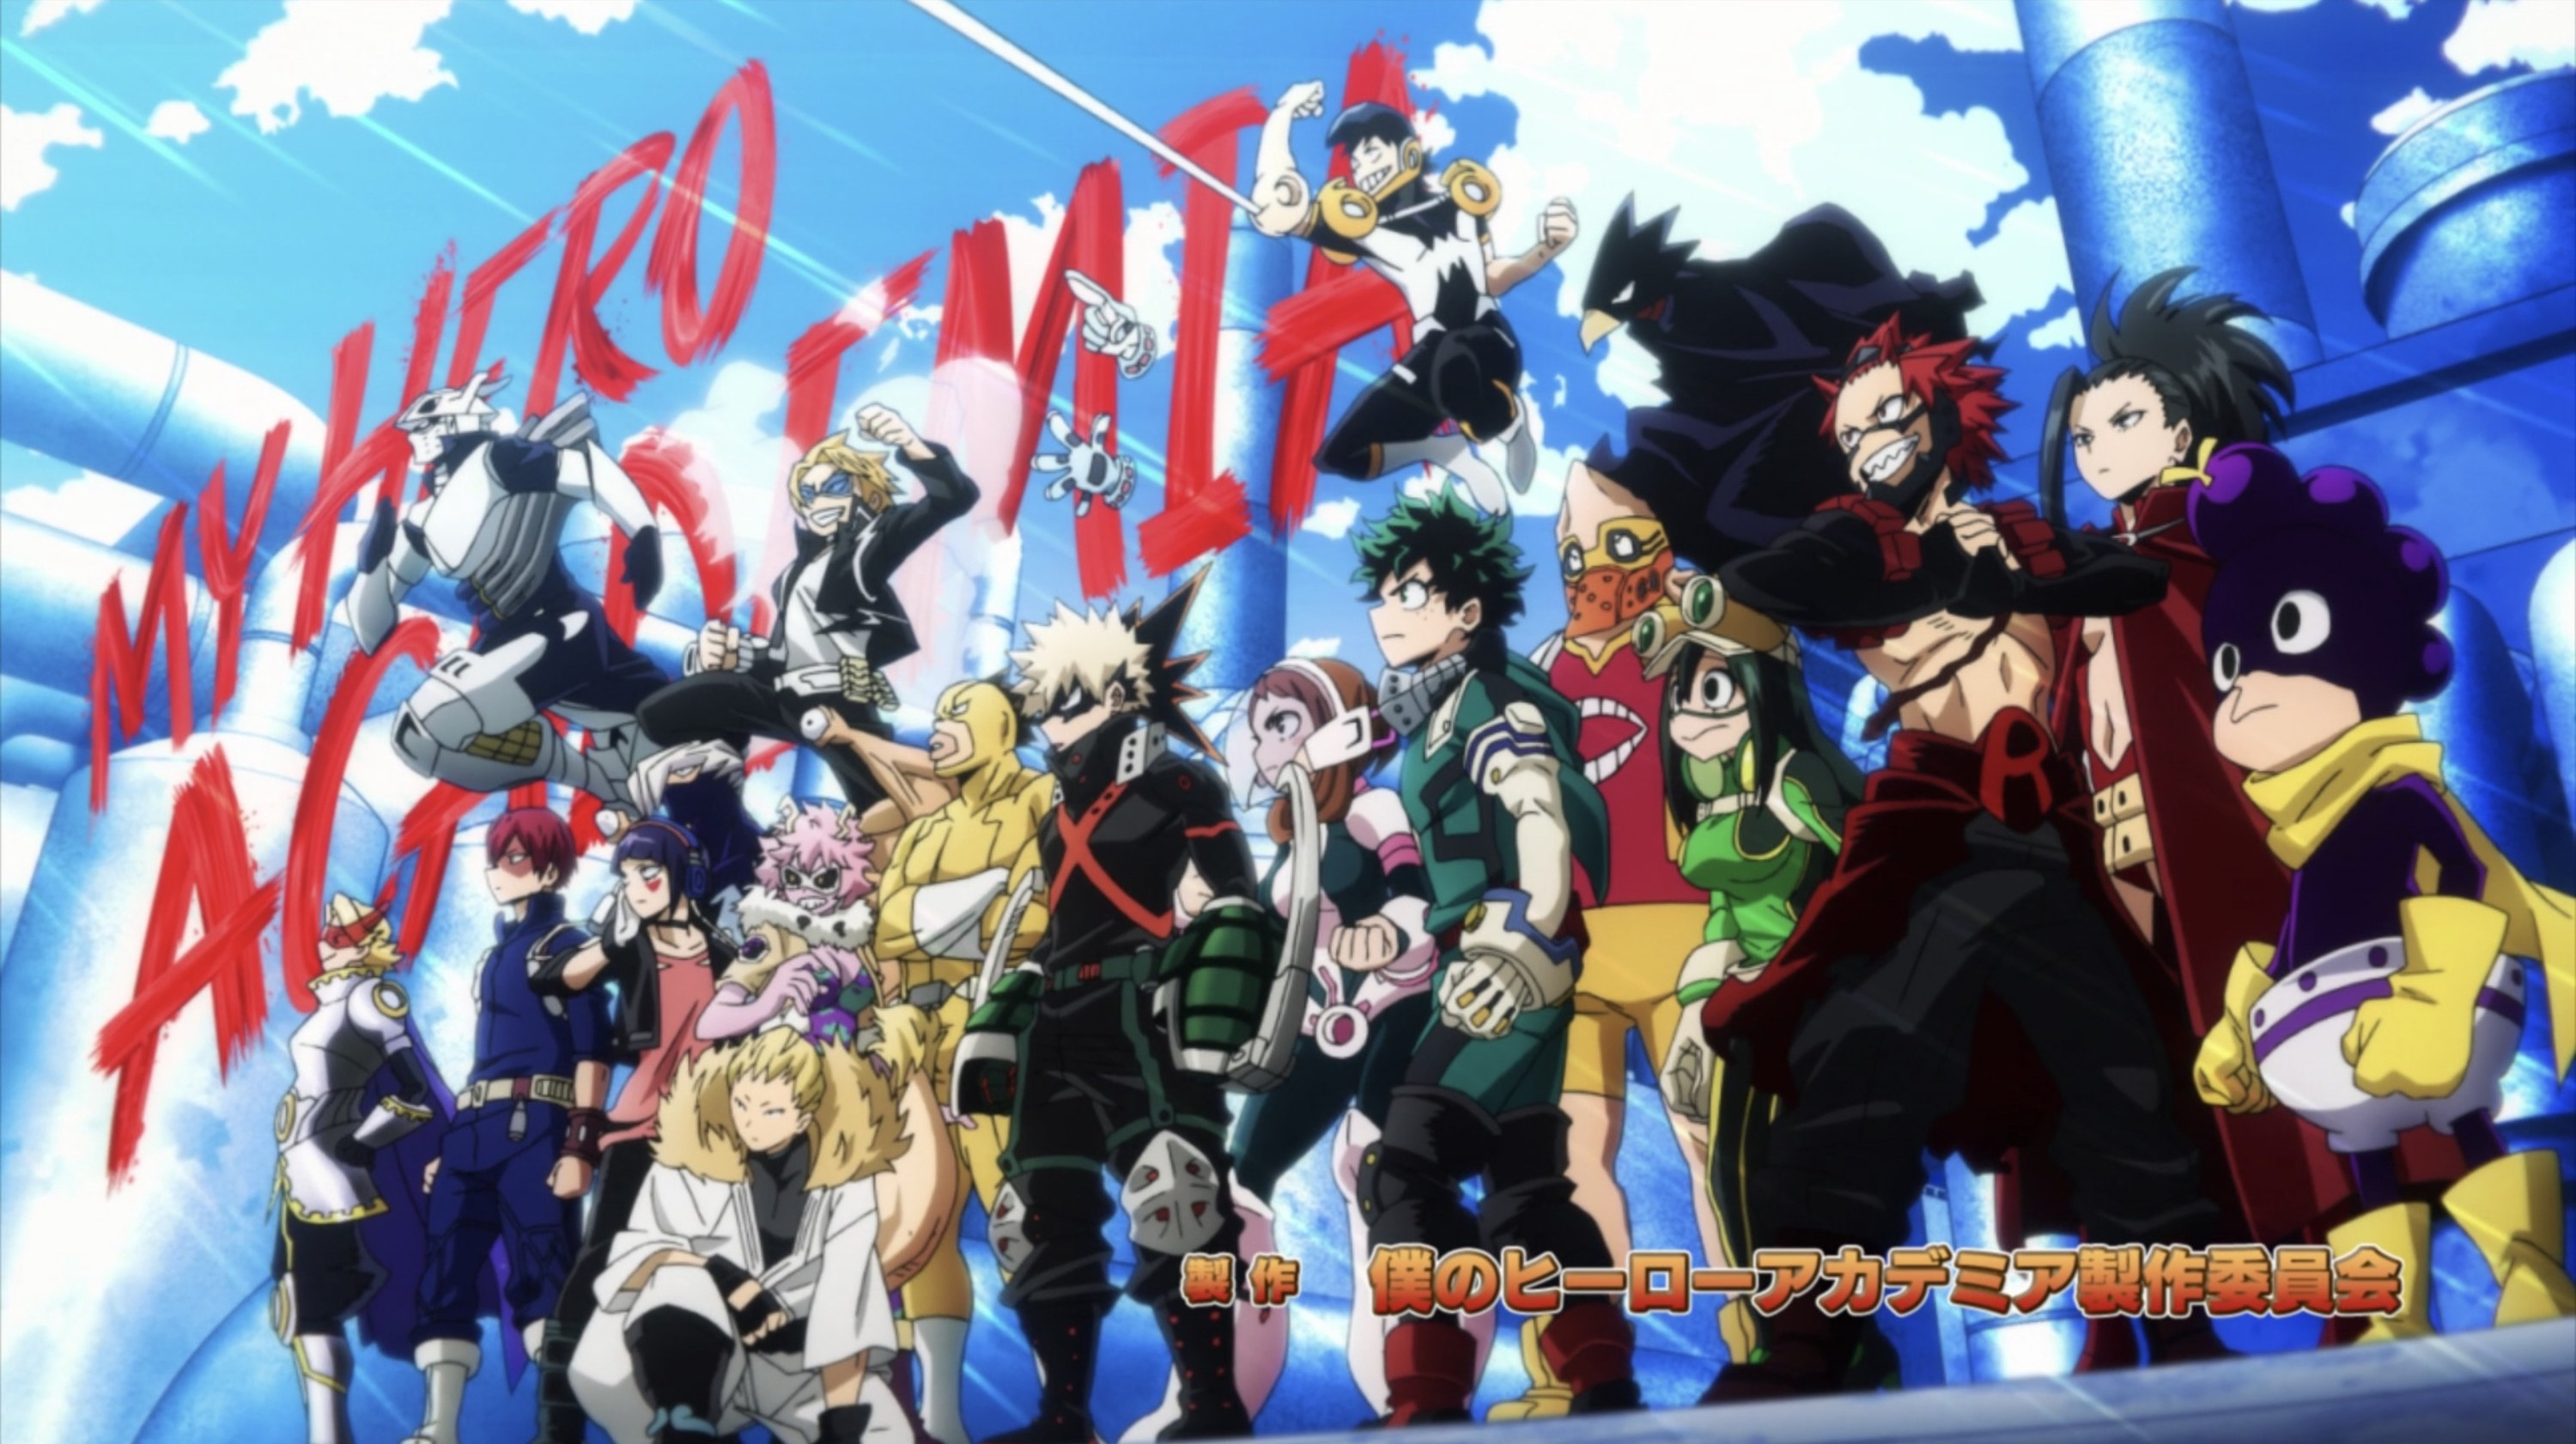 UA's first years of Class 1-A in their hero uniform looking into the distance